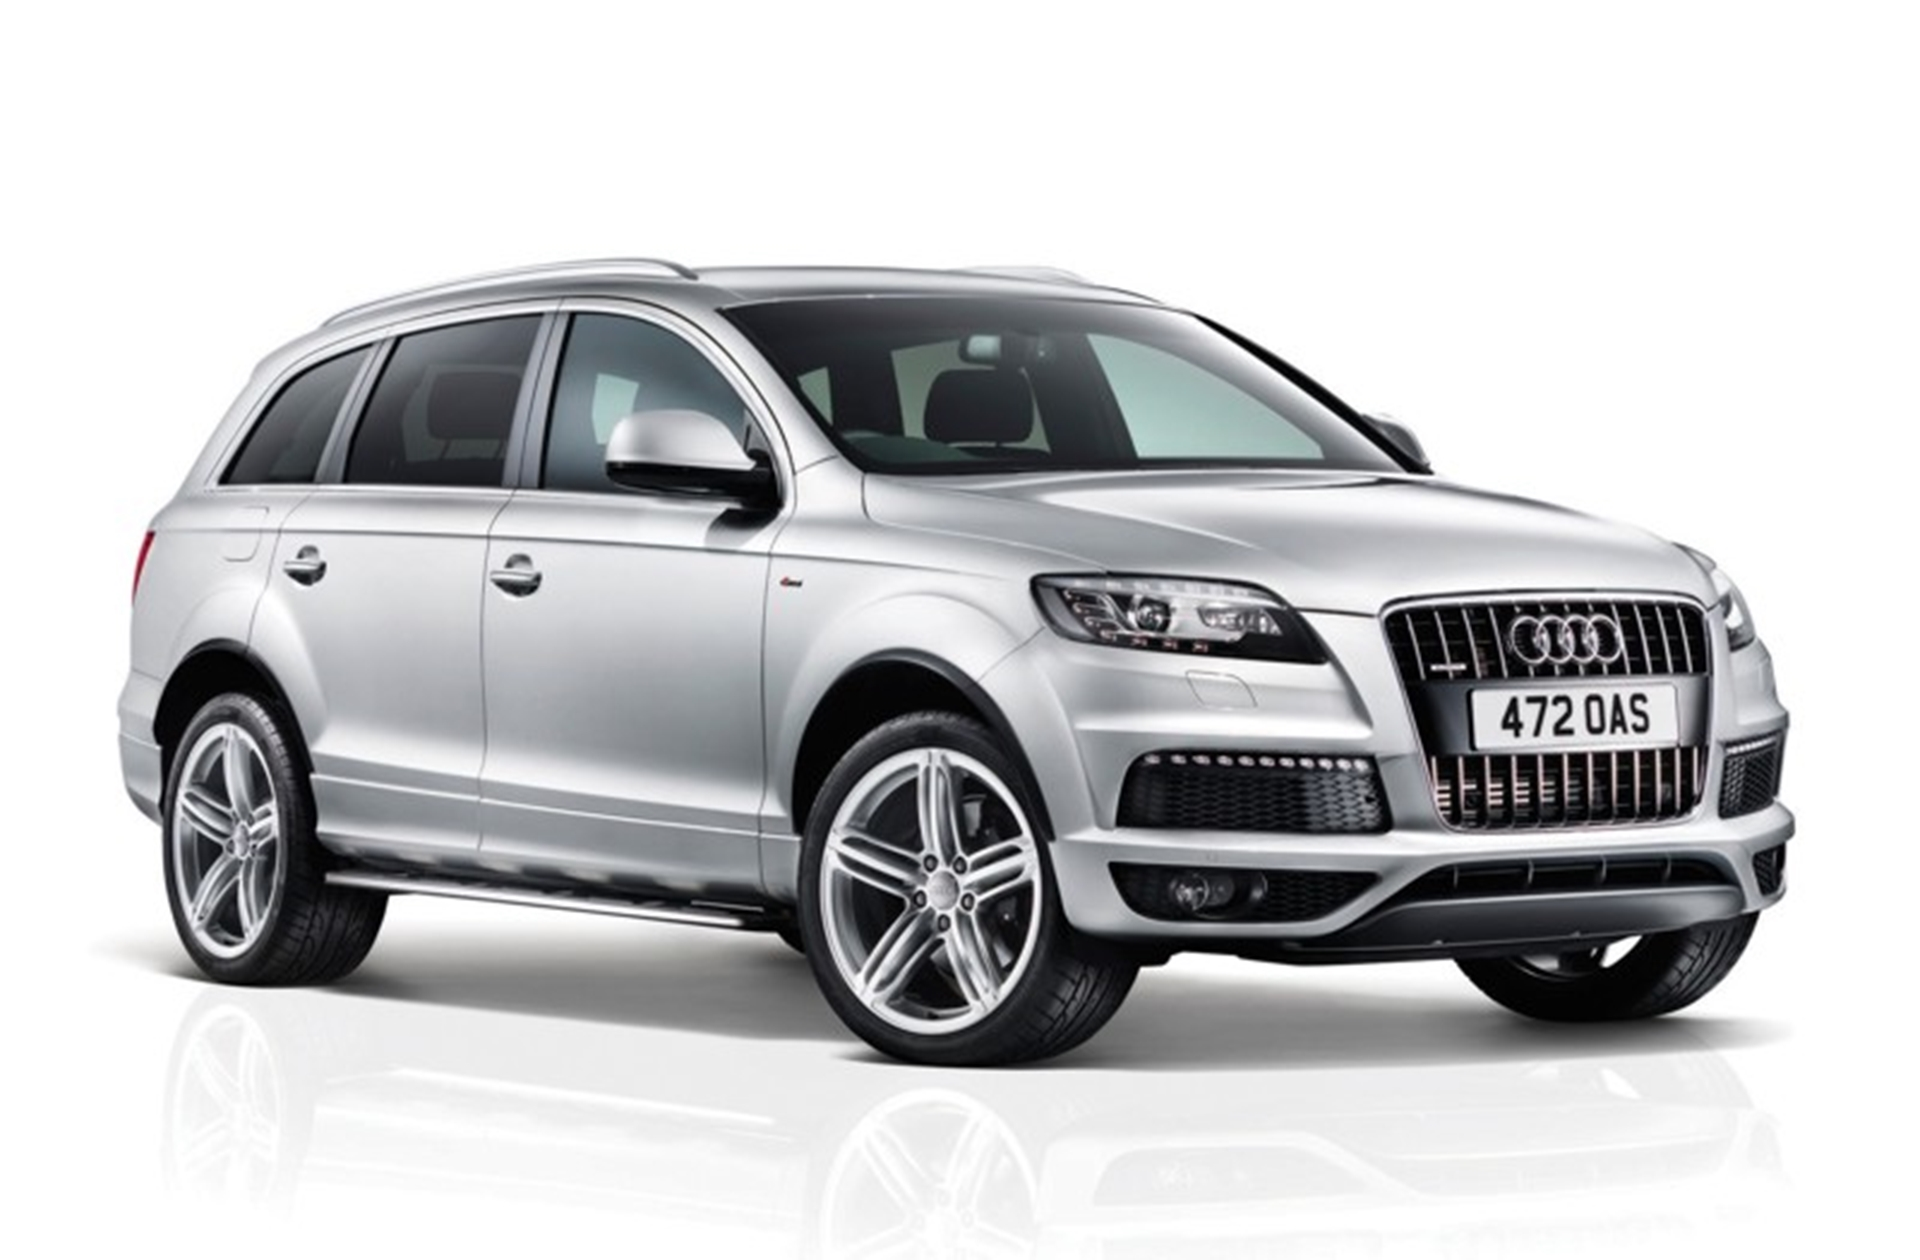 The Audi Q7 3.0 TDI (204PS) S line Plus